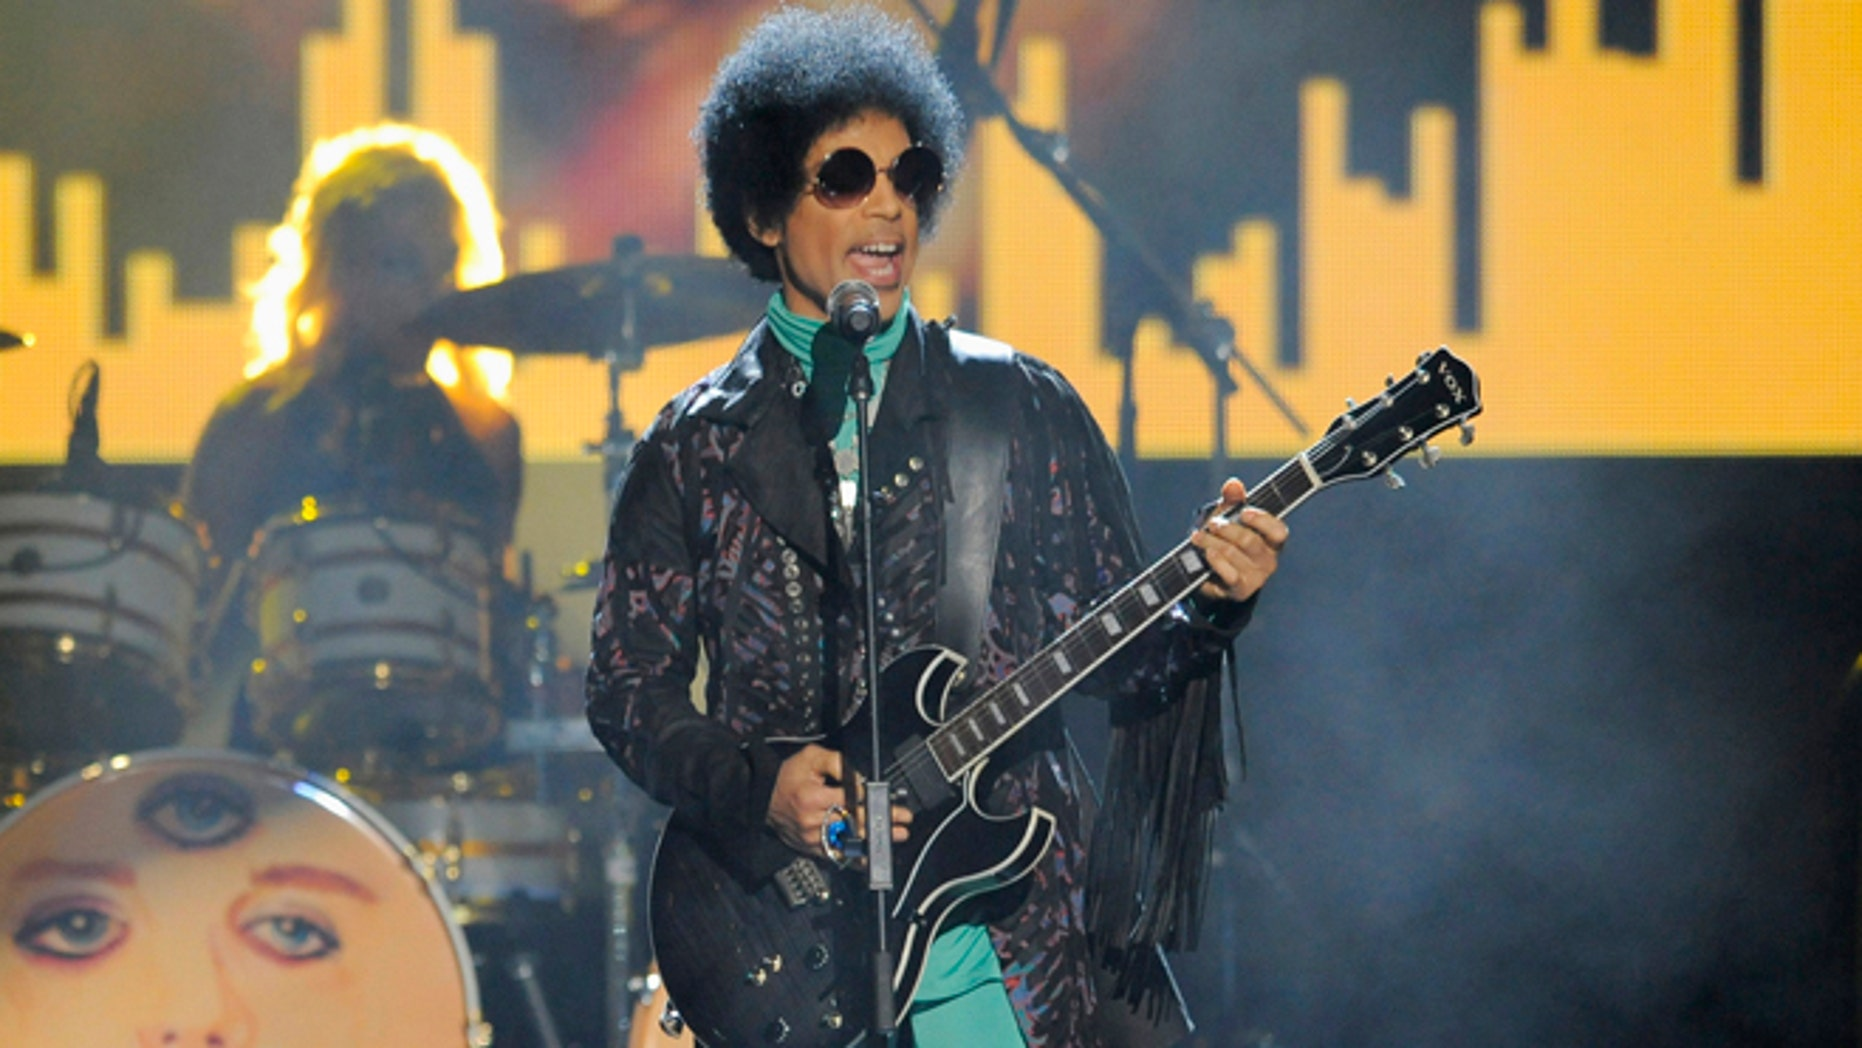 A judge has confirmed that Prince's 6 siblings are heirs to his estate.